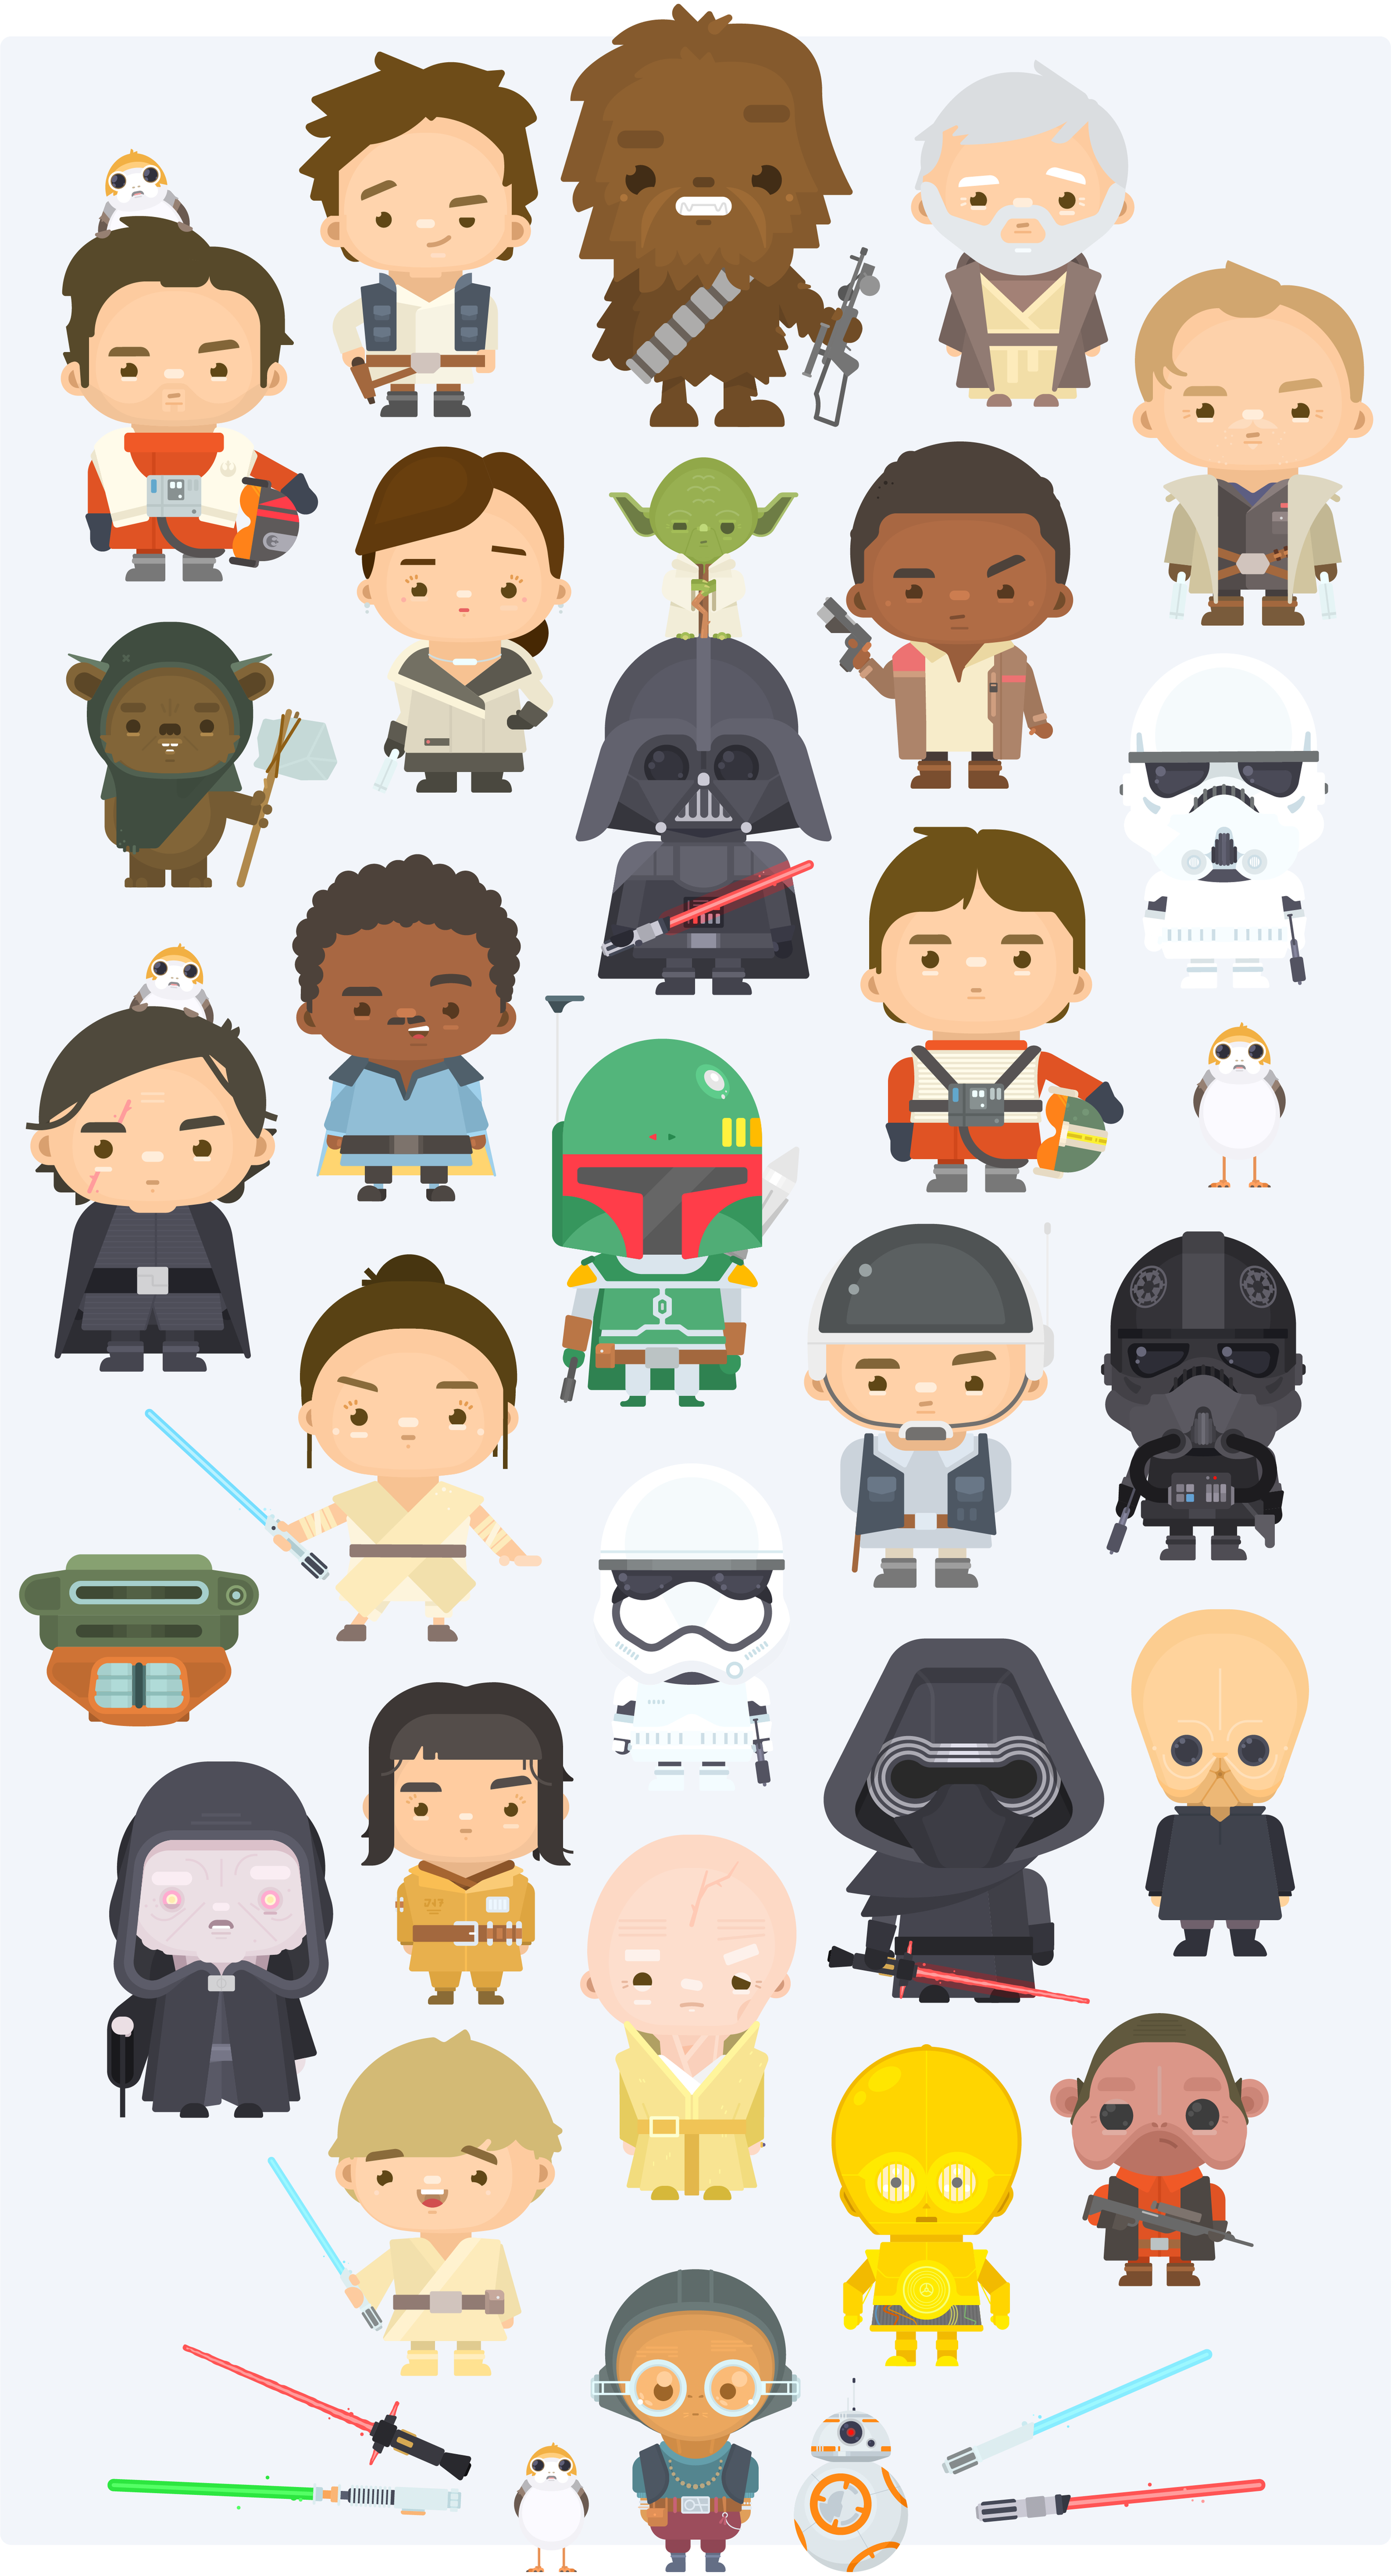 SW_CHARACTERS_BG-38.png